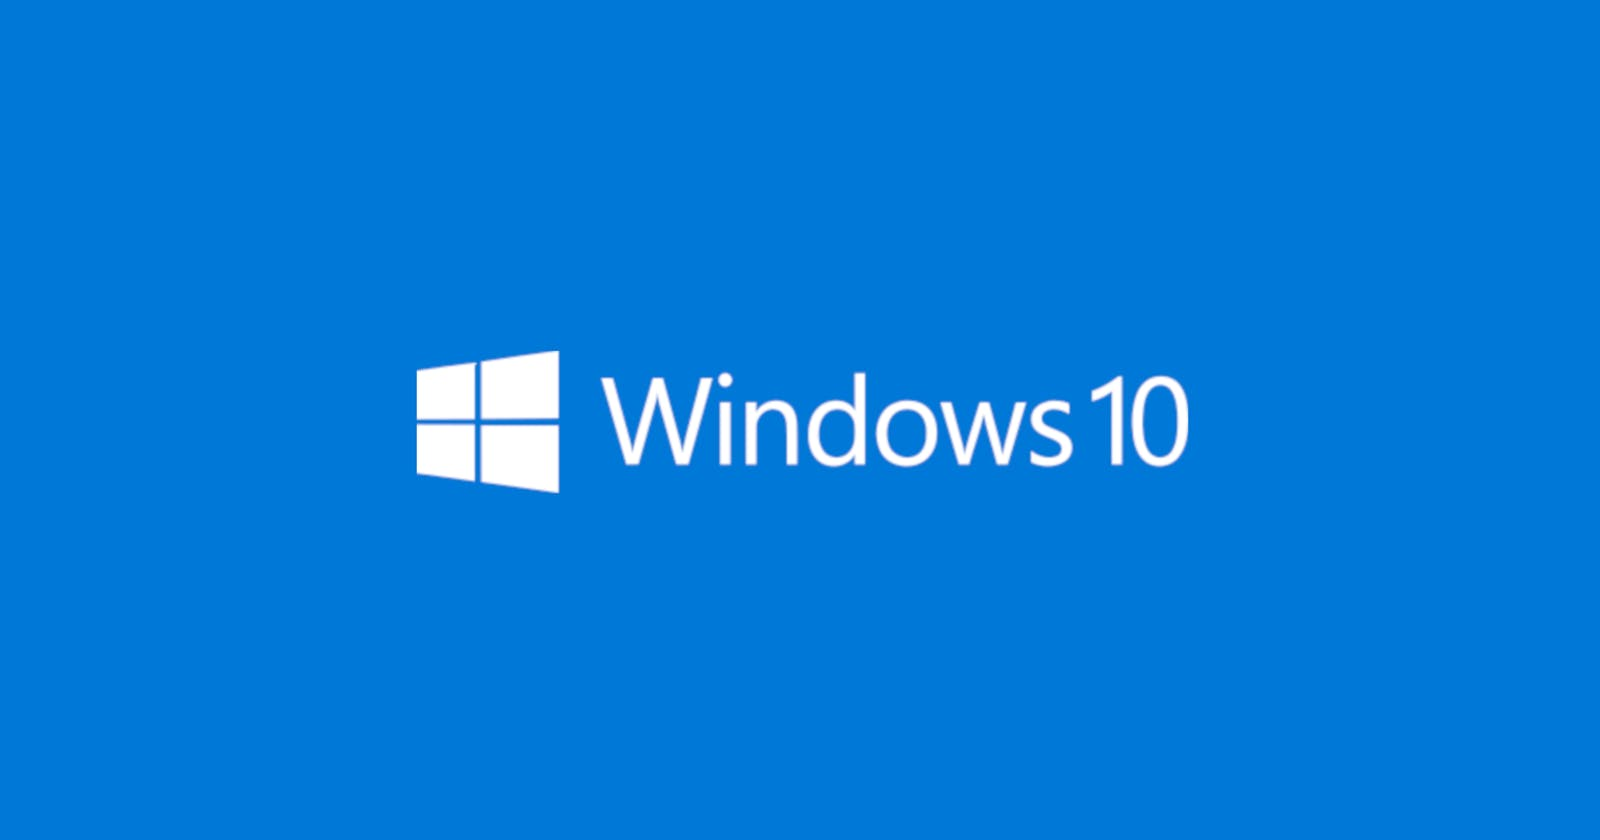 Unable to access network mapped drivers in Windows 10 after reboot or logon